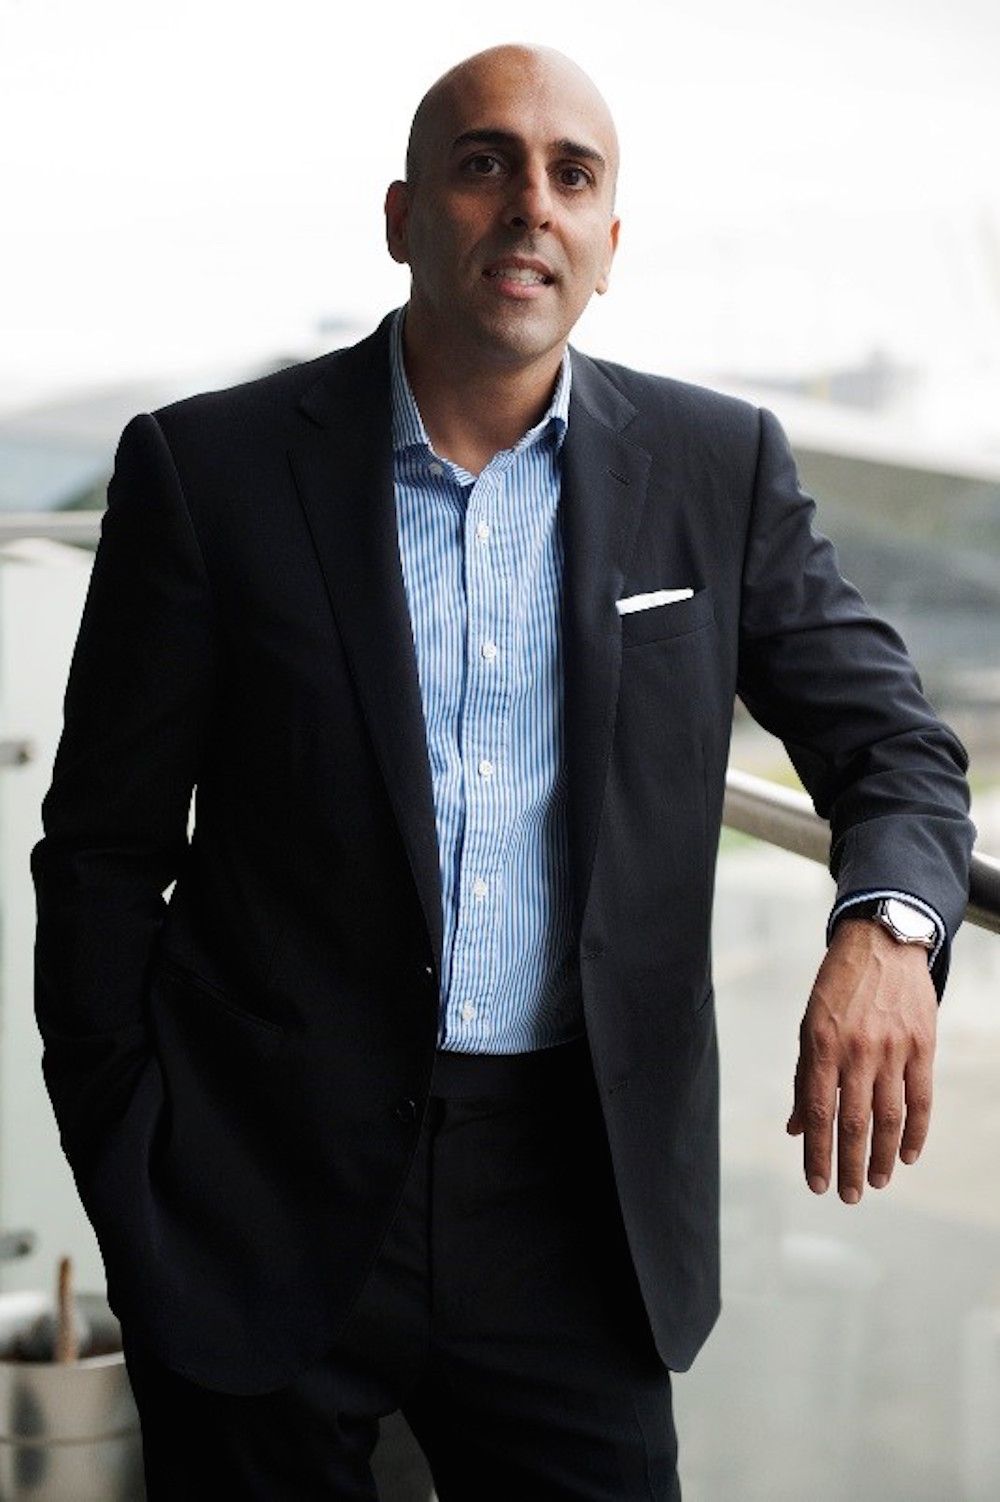 Ranjit Thind publishes the secrets of Strategic Fashion Management with Routledge.